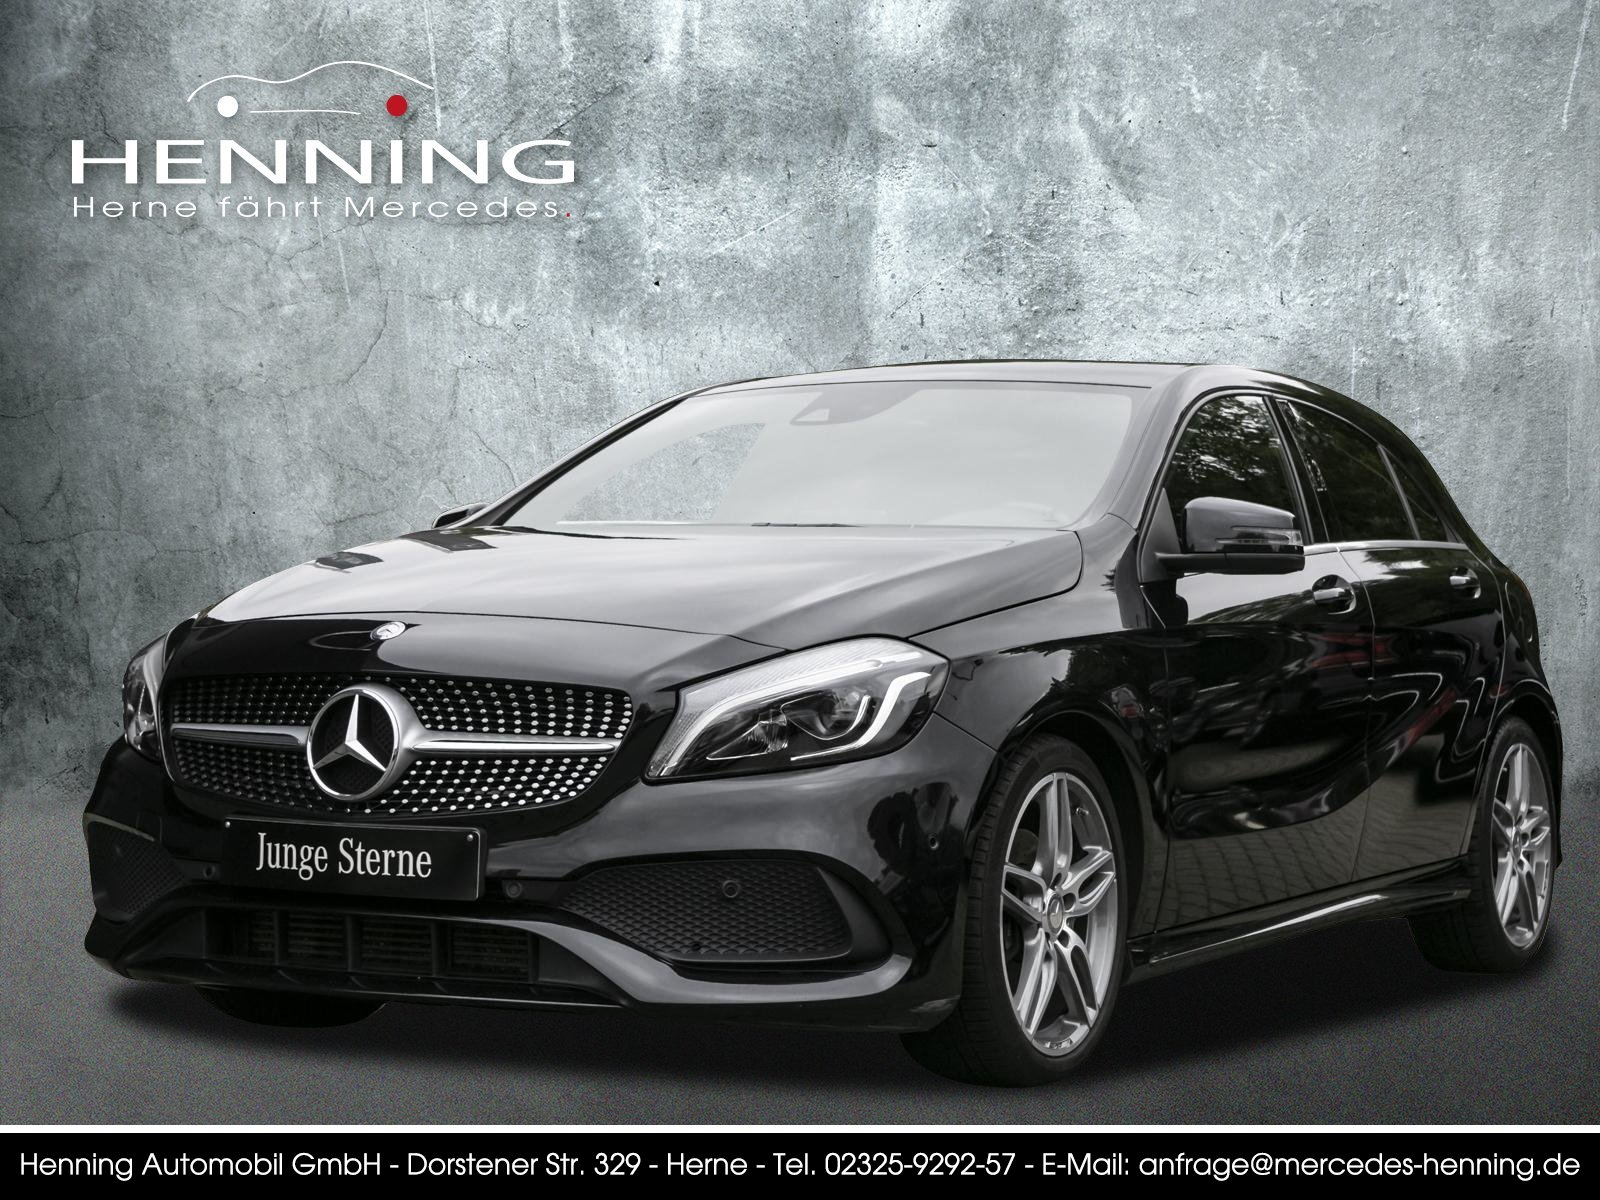 Mercedes-Benz A 180 AMG 7G LED Comand Klima Tempomat CarPlay, Jahr 2016, Benzin